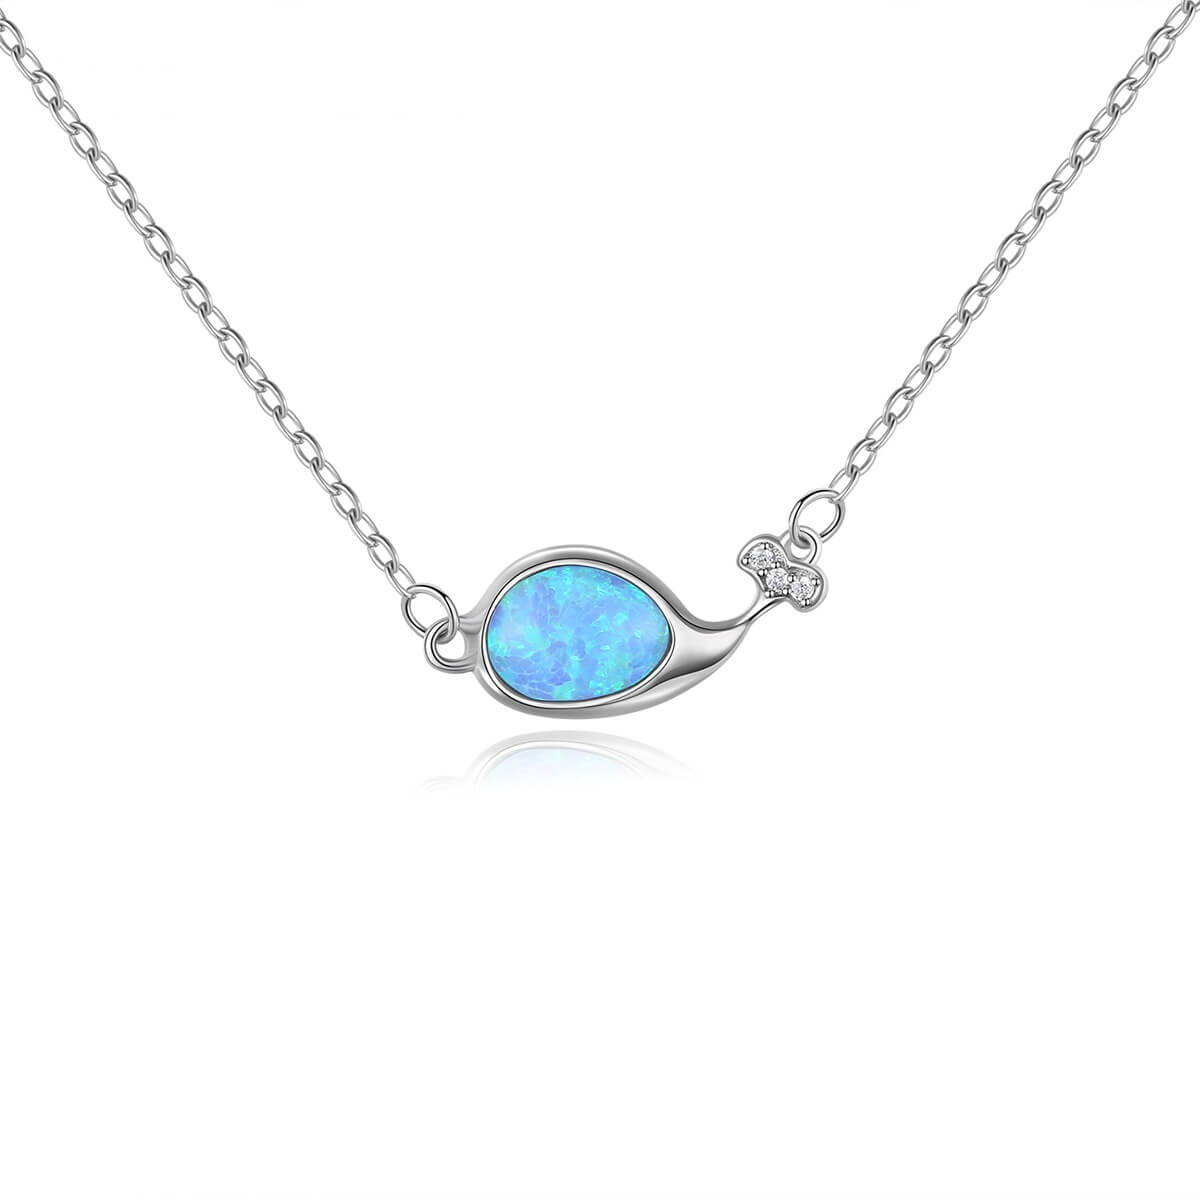 Whale-shaped ladies' sterling silver clavicle necklace